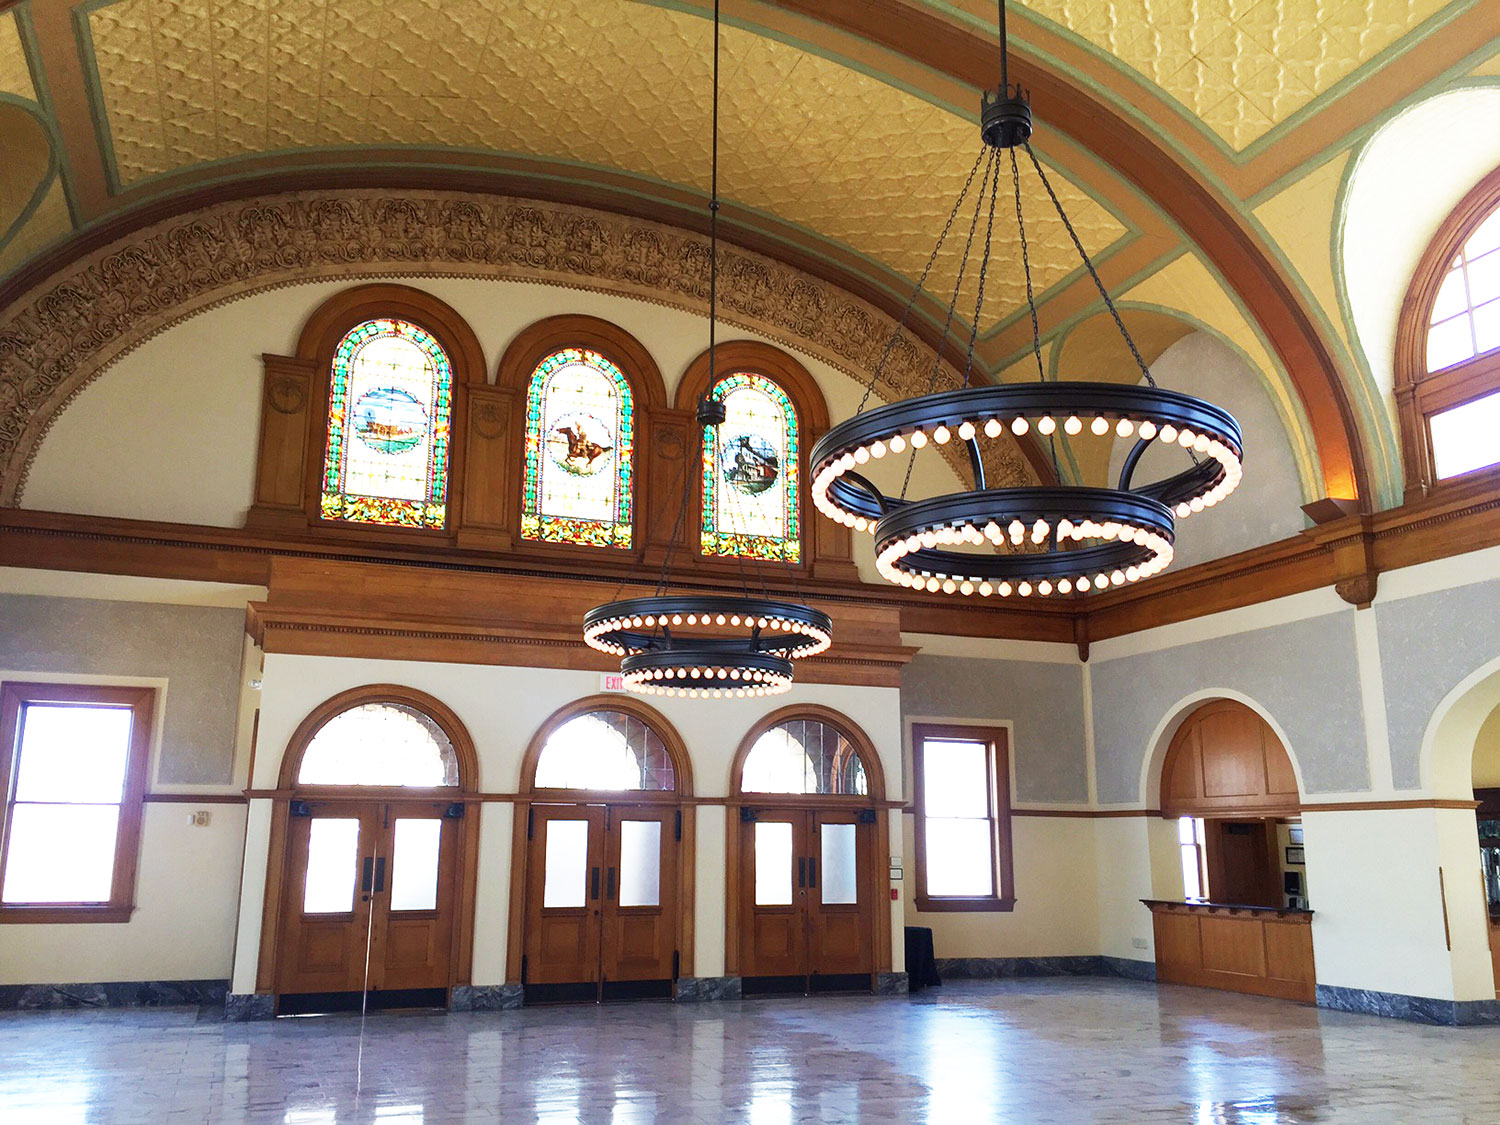 Fort worth wedding venue Ashton Depot grand ballroom and stained glass windows